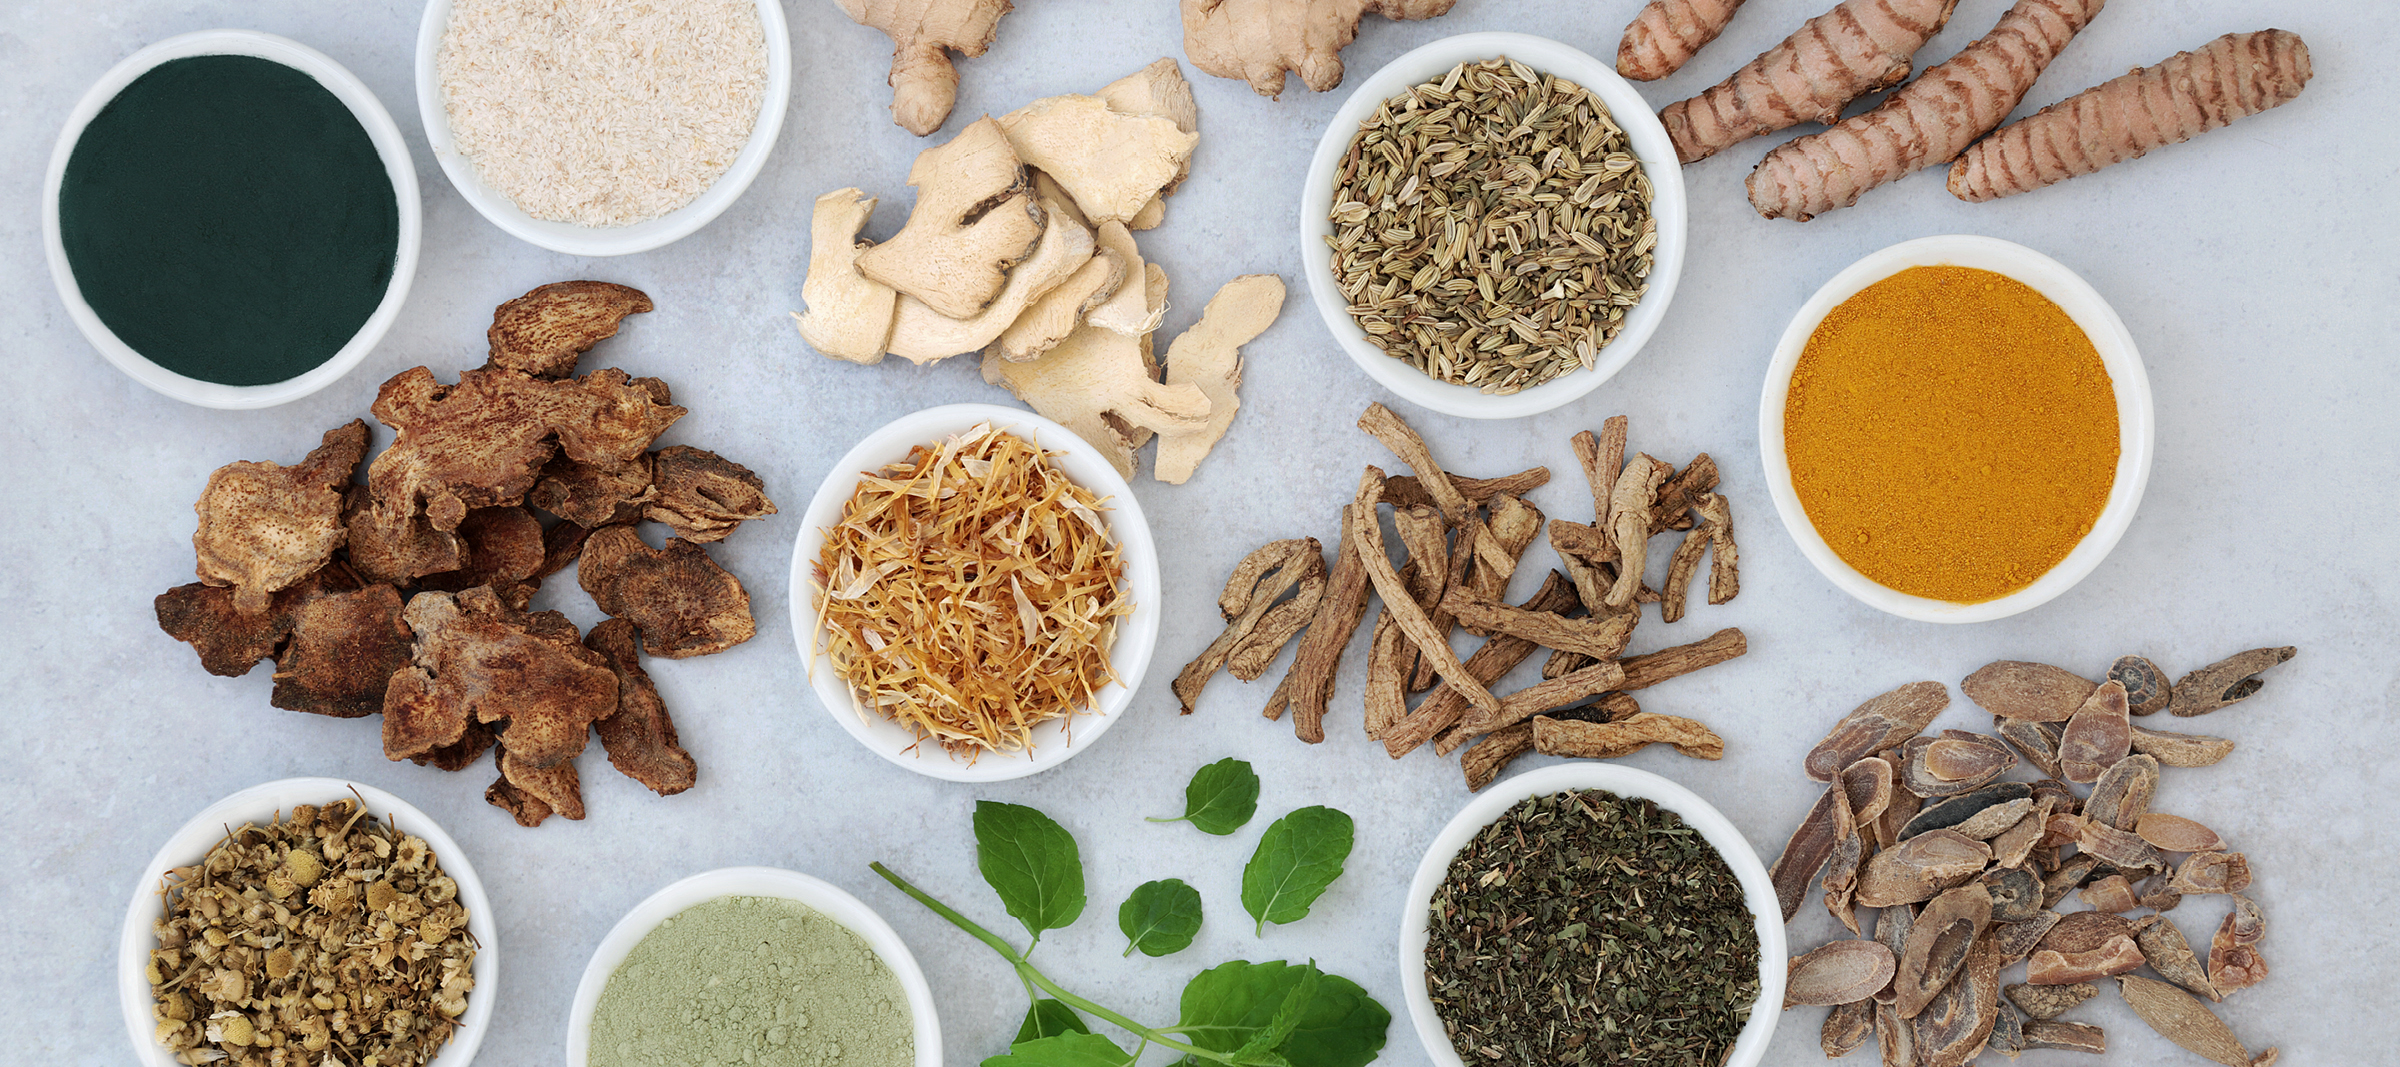 How a Naturopath Can Help With Gut Issues